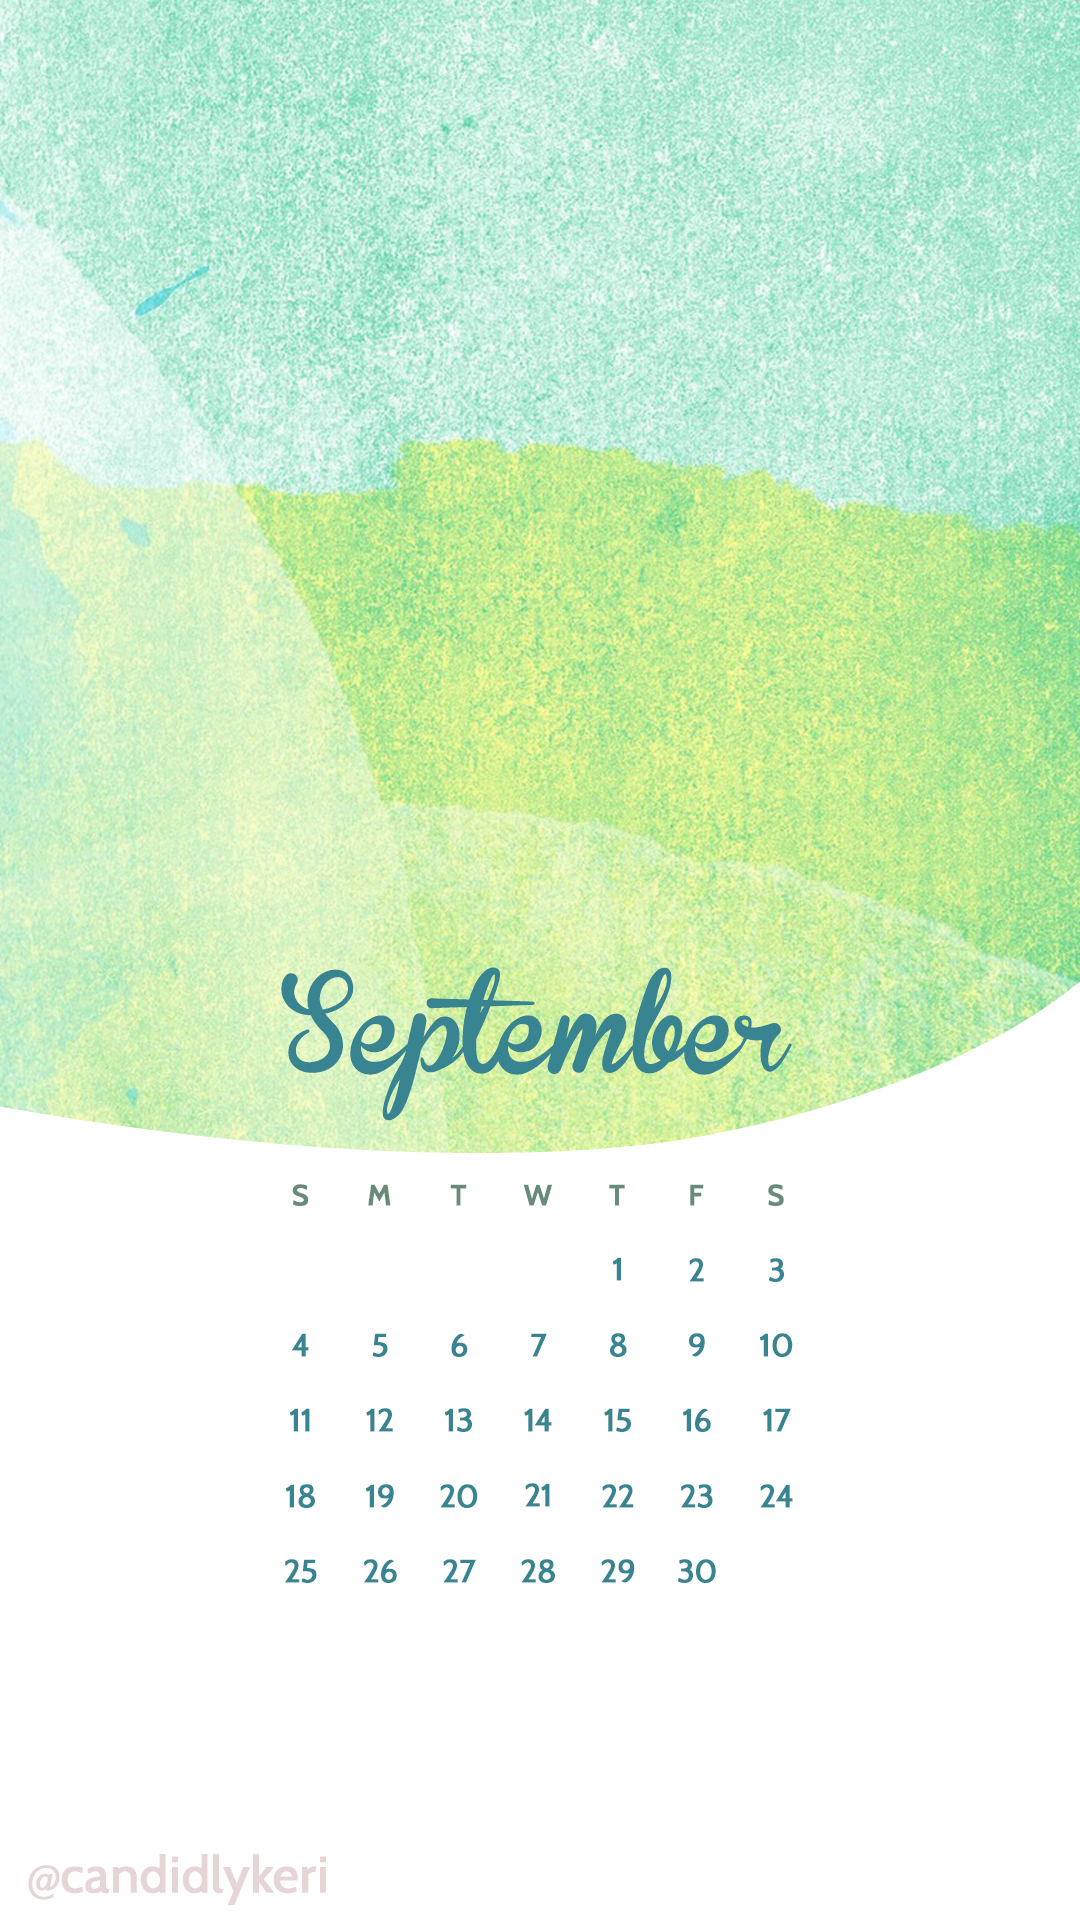 Blue-green-watercolor-September-calendar-you-can-download-for-free-on-the-blog-For-a-wallpaper-wp3603525-1